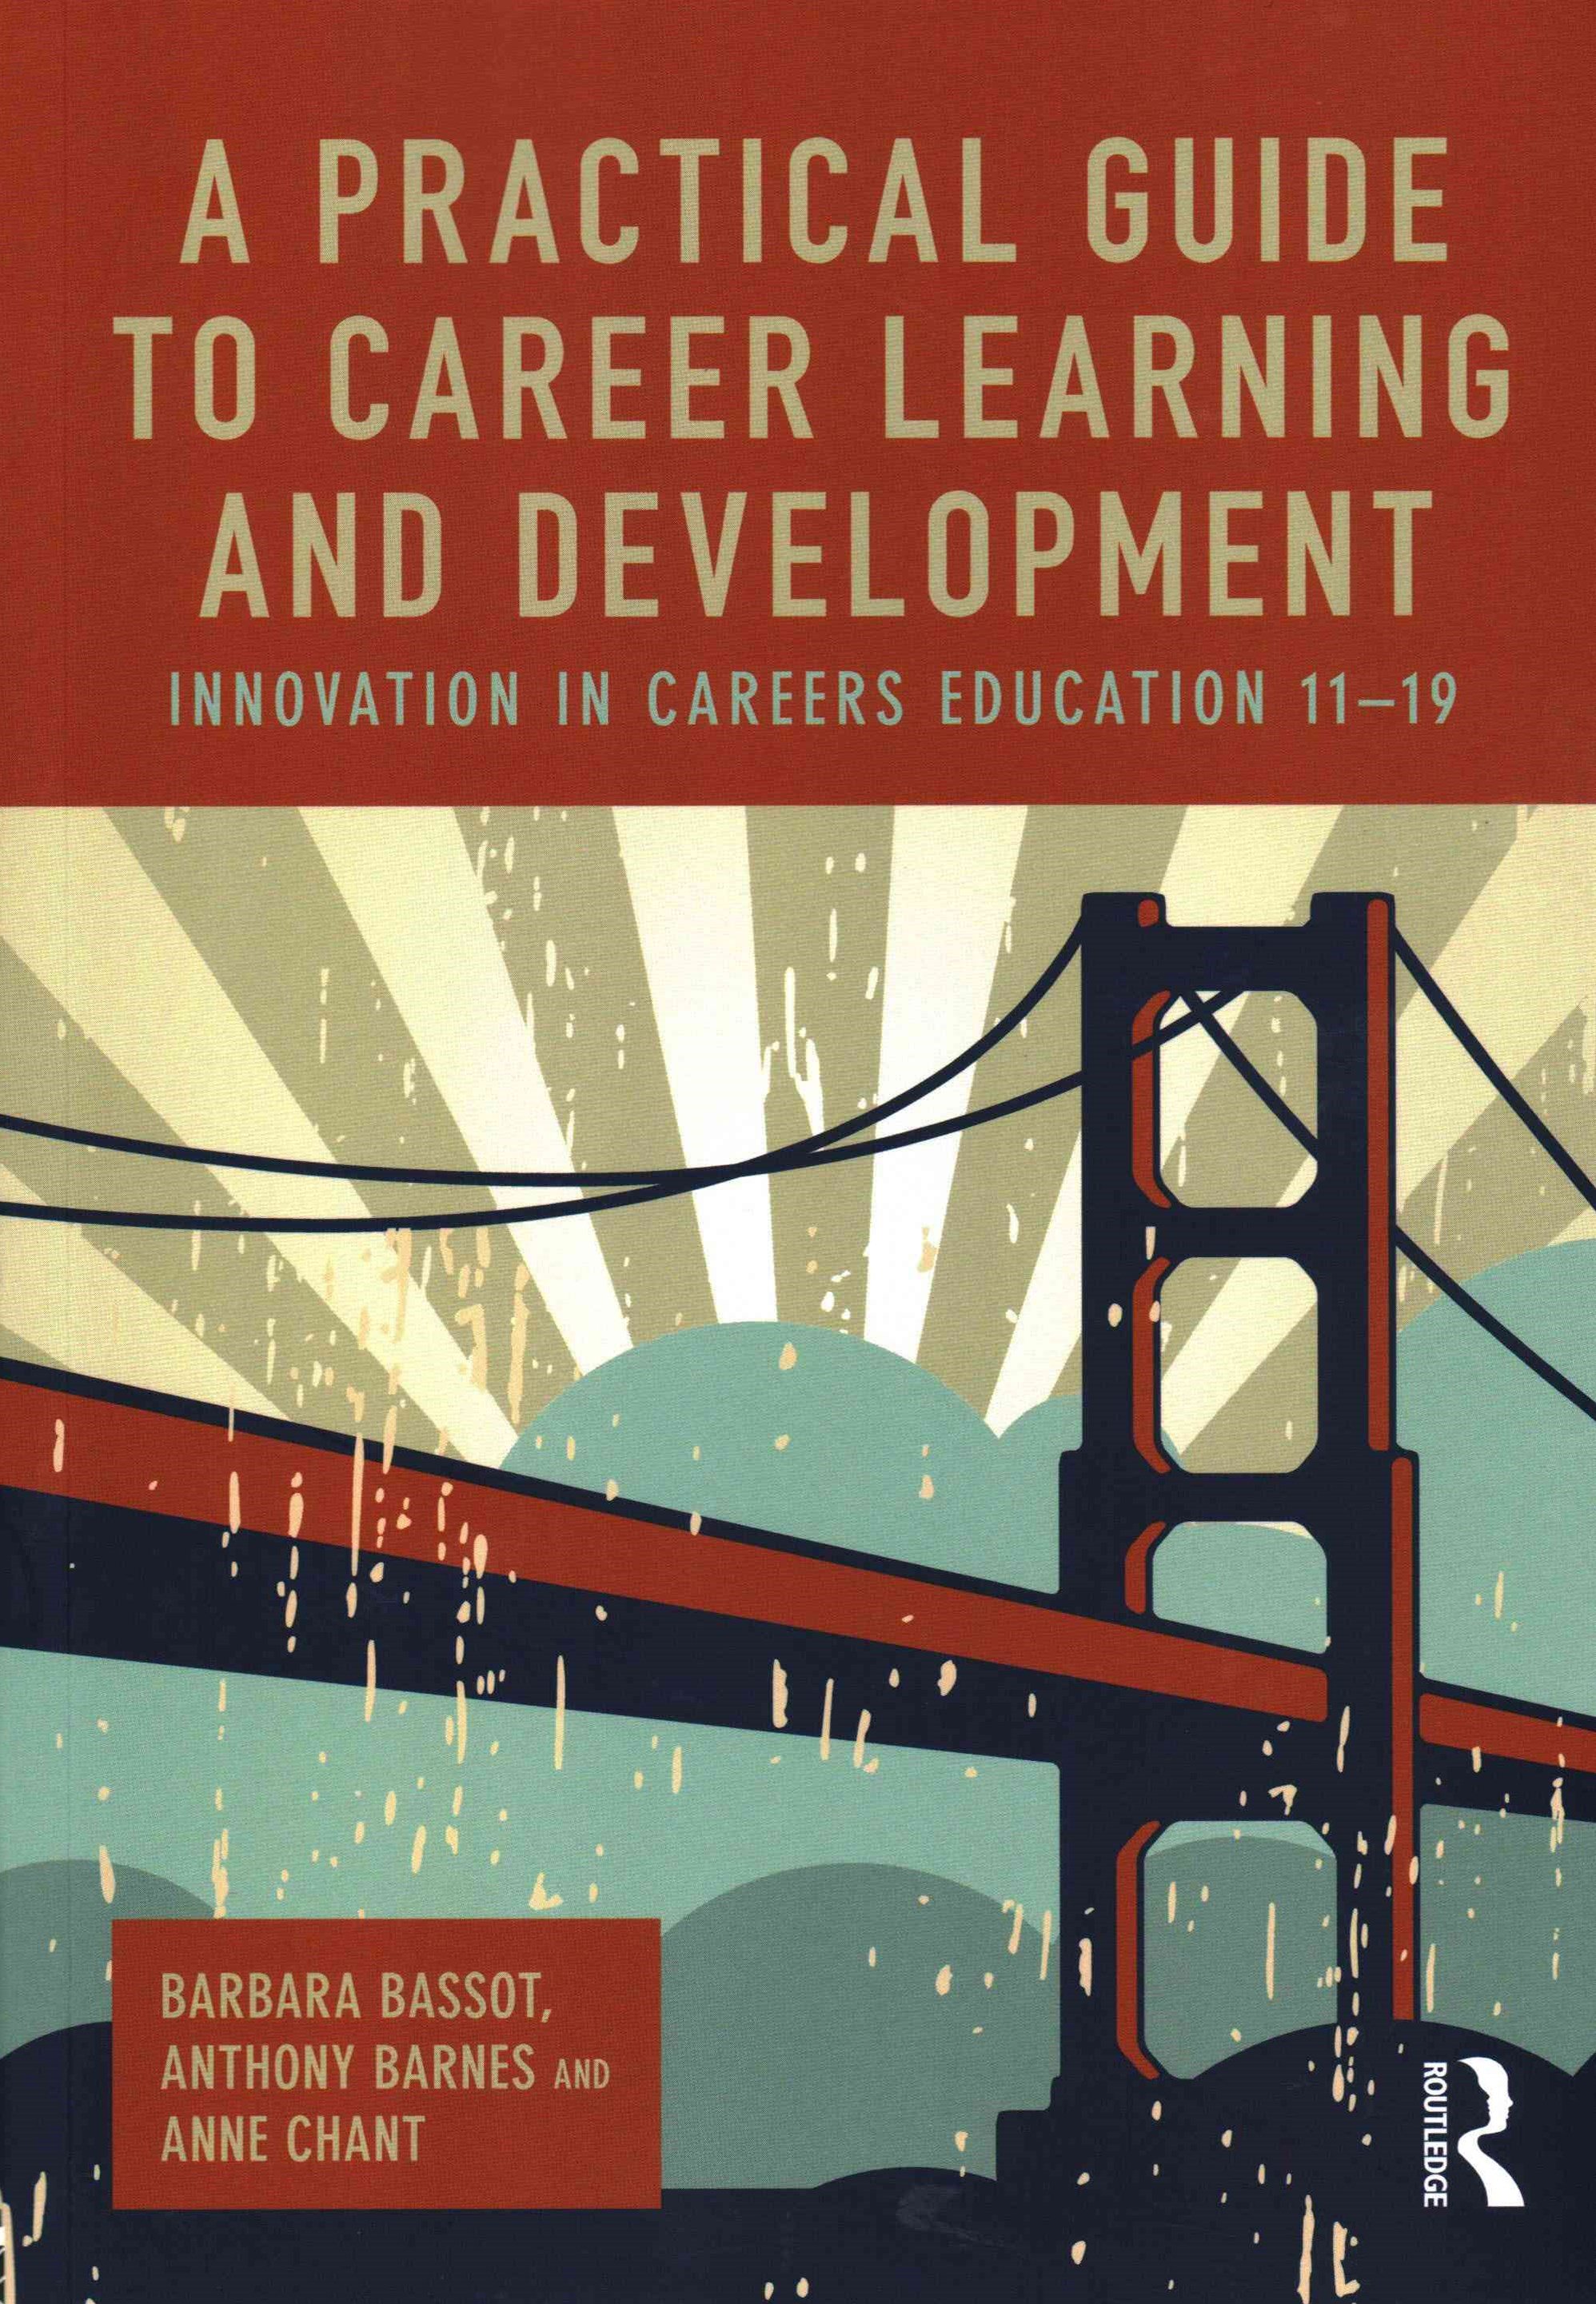 A Practical Guide to Career Learning and Development